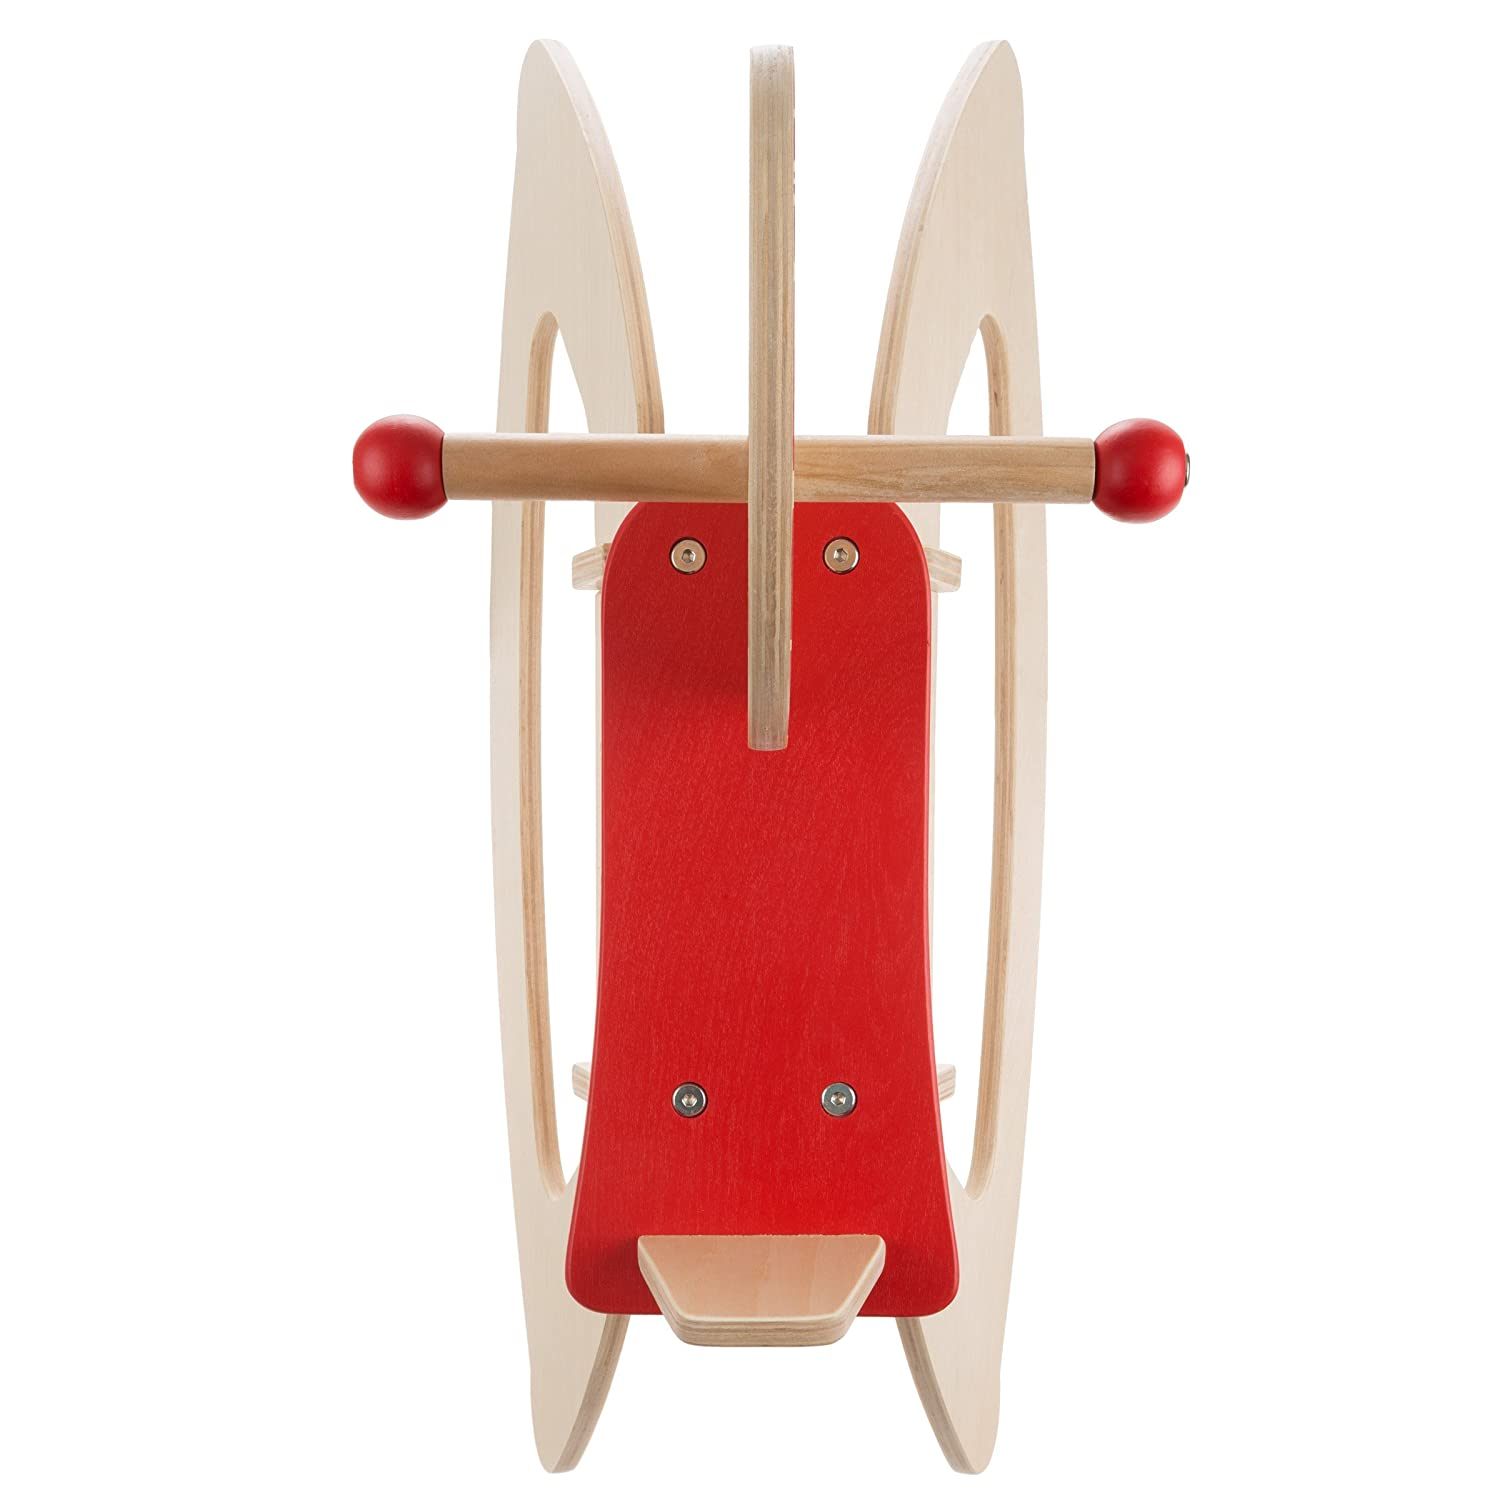 Balance and Coordination-Fun for Boys and Girls 80-JR108 Rocking Horse Ride-on Toy for Children-Classic Wooden Rocker-Helps Develop Strength Wood Play Hey